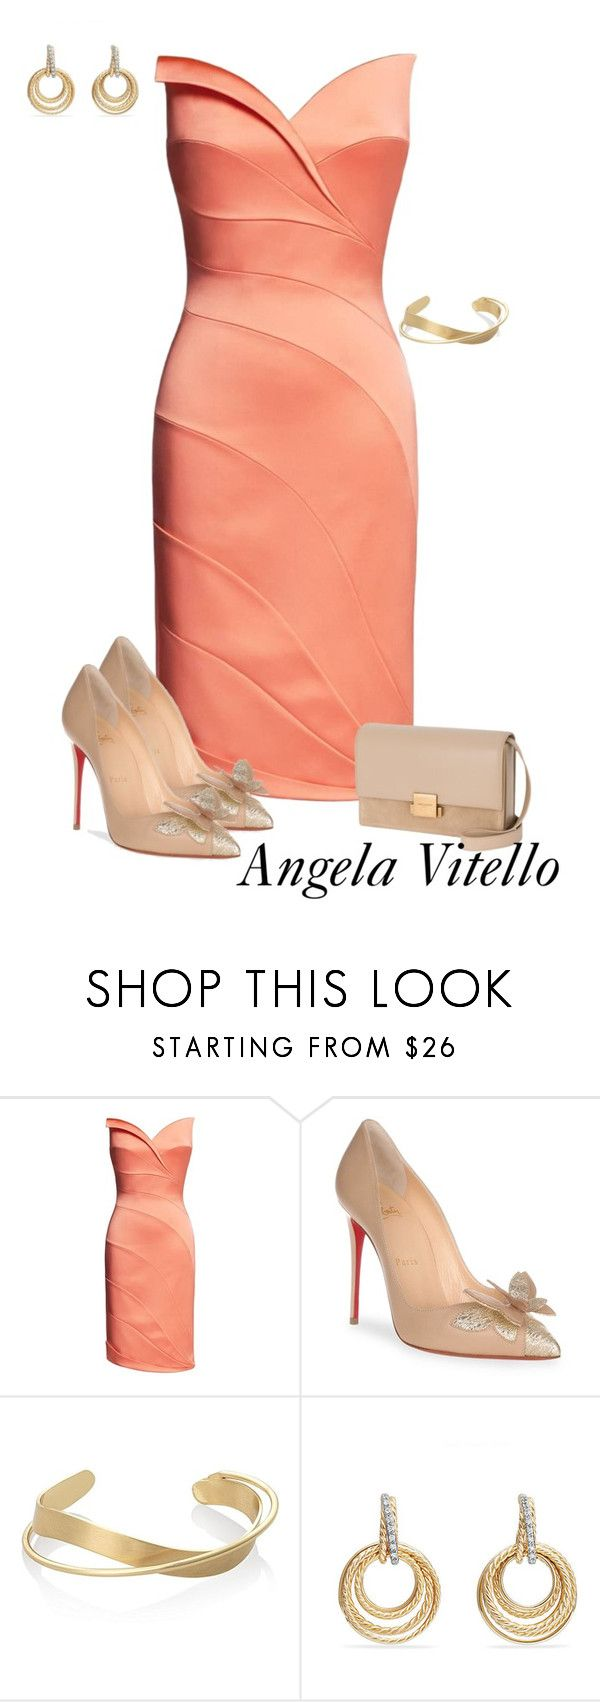 """Untitled #1026"" by angela-vitello on Polyvore featuring Christian Louboutin, David Yurman and Yves Saint Laurent"